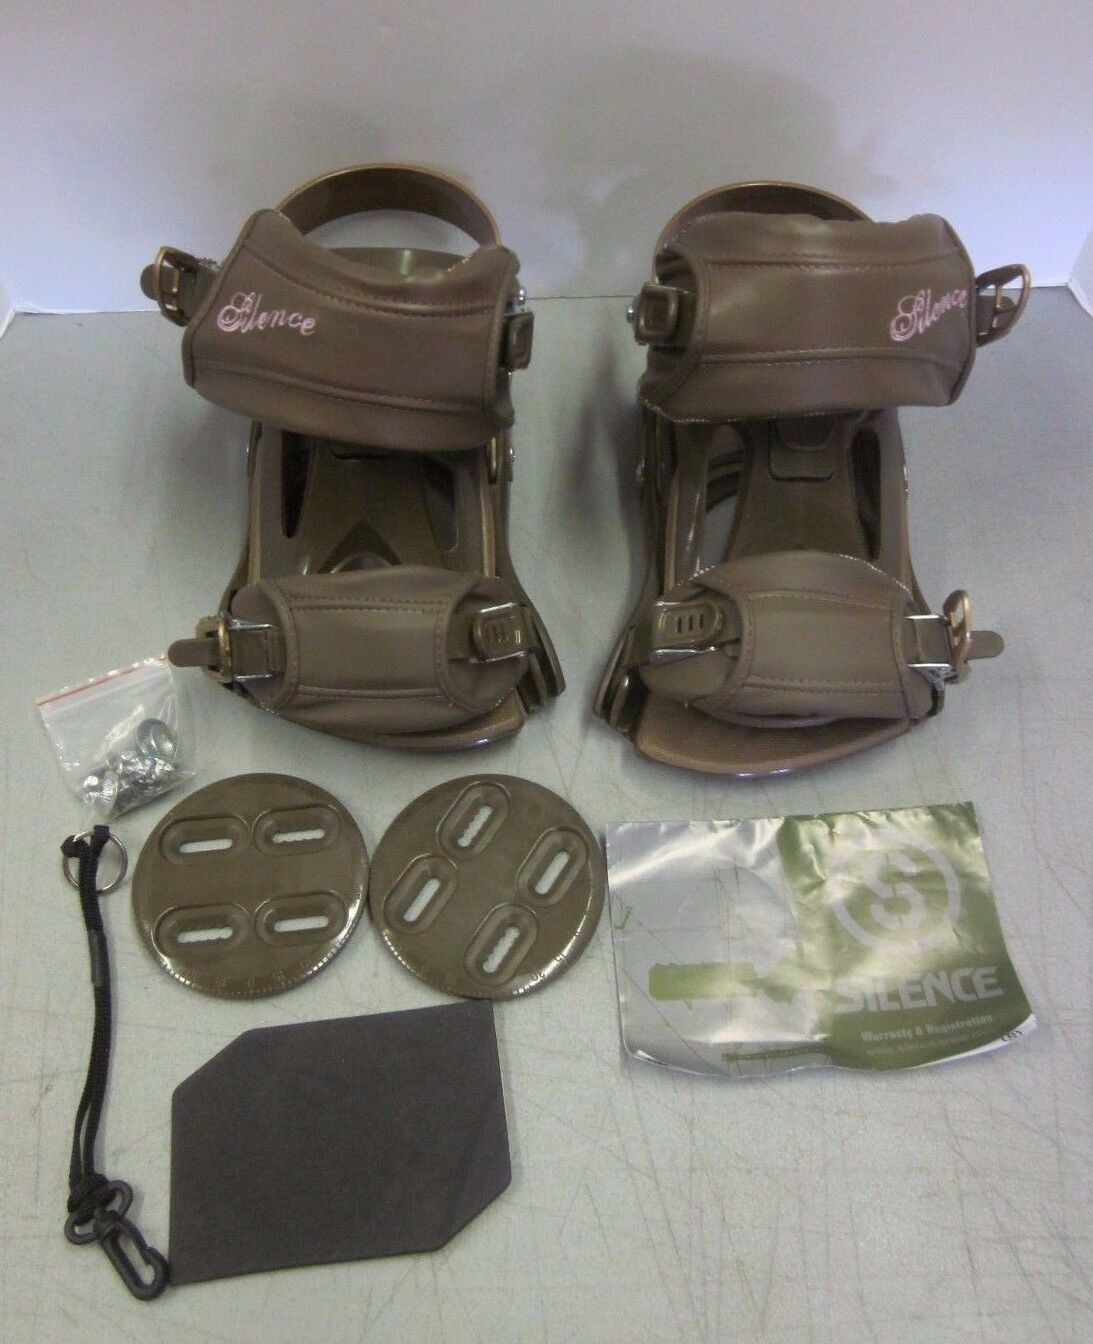 New Silence SNLC II Snowboard Fittings Bindings Olive Brown Size Small